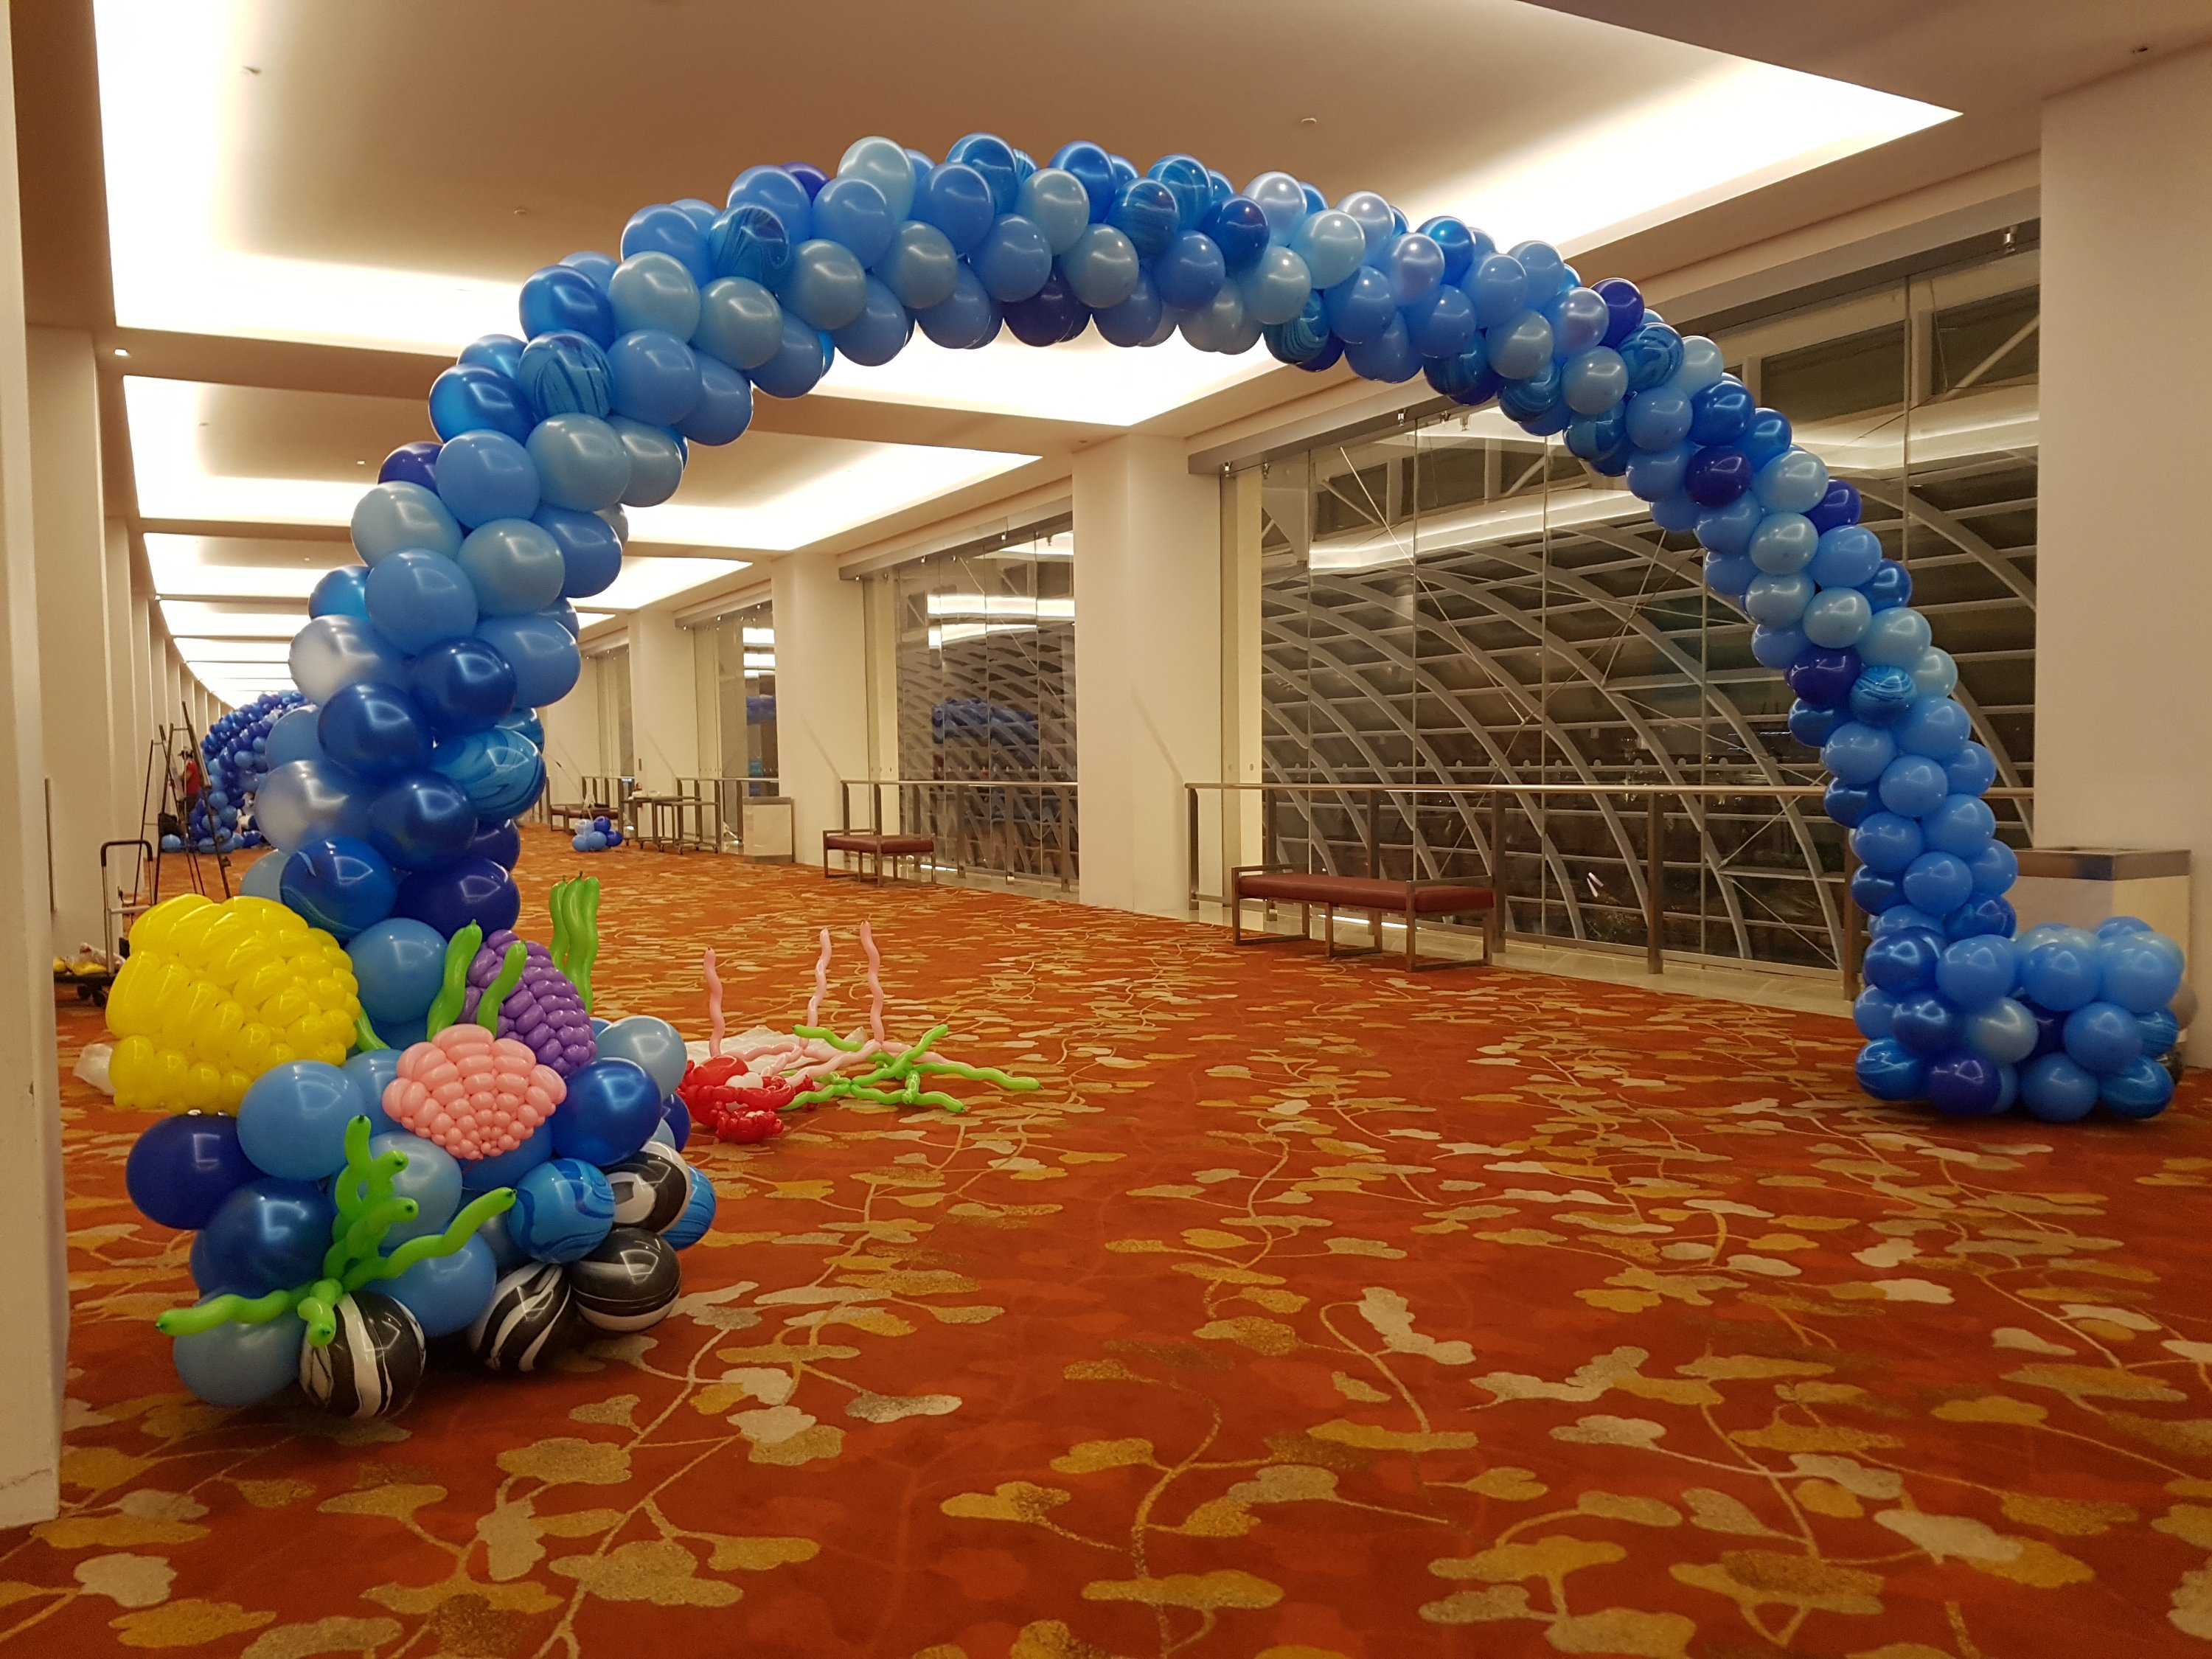 , Underwater themed balloon arch for MBS!, Singapore Balloon Decoration Services - Balloon Workshop and Balloon Sculpting